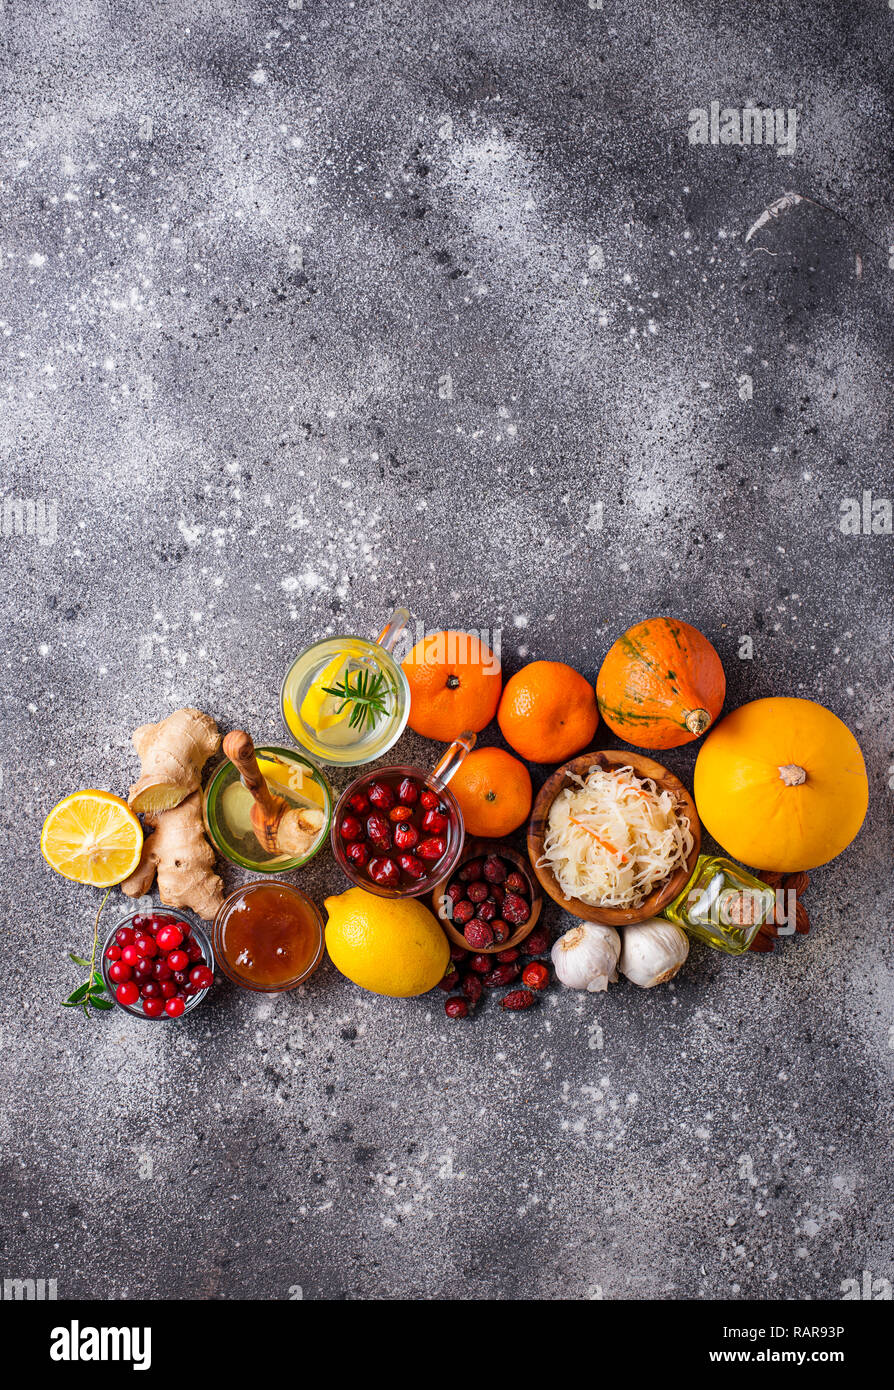 Healthy products for Immunity boosting - Stock Image